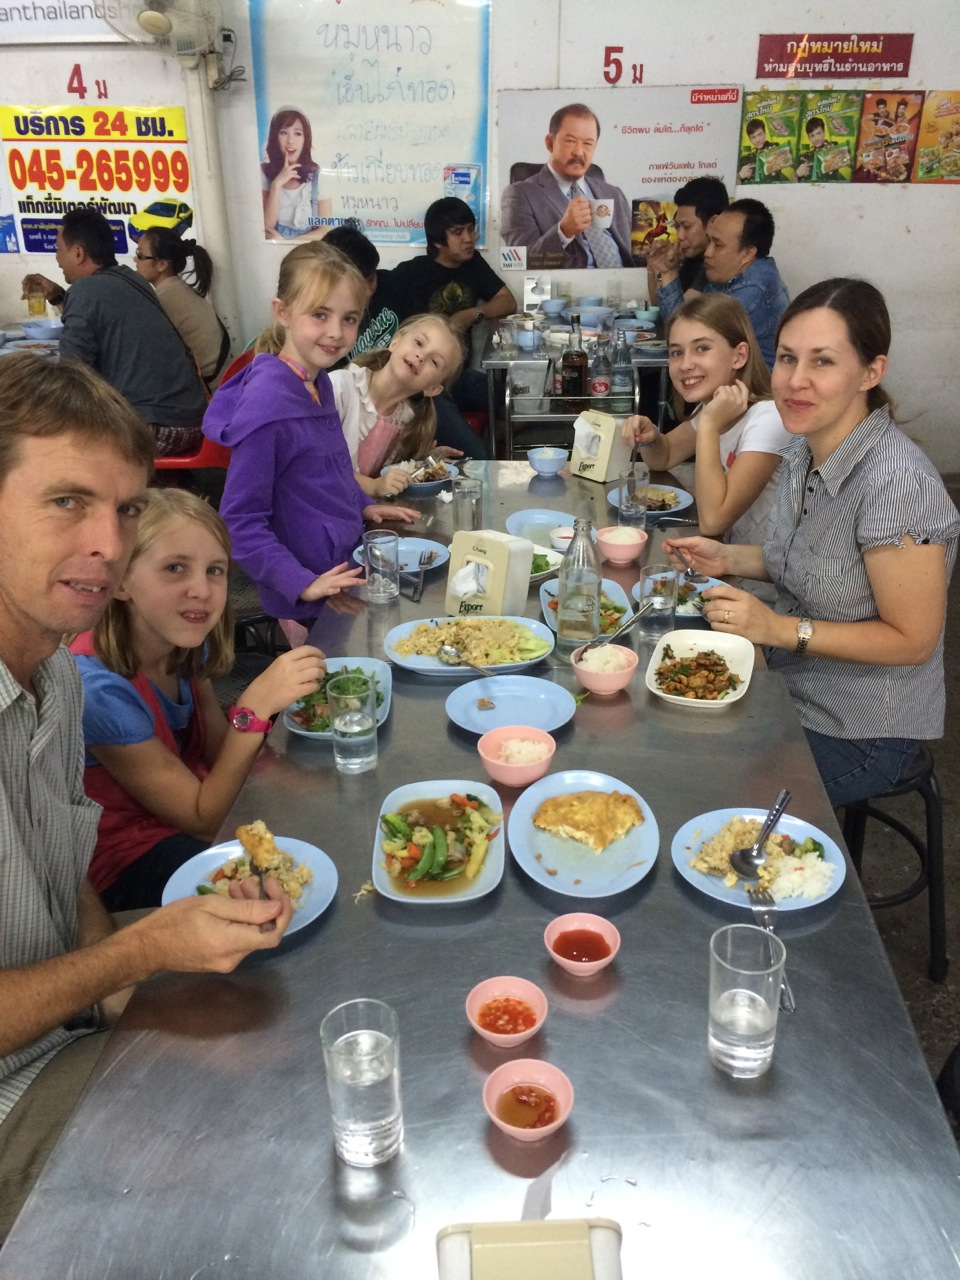 My brother and his family tucking into some Thai food in Ubon.